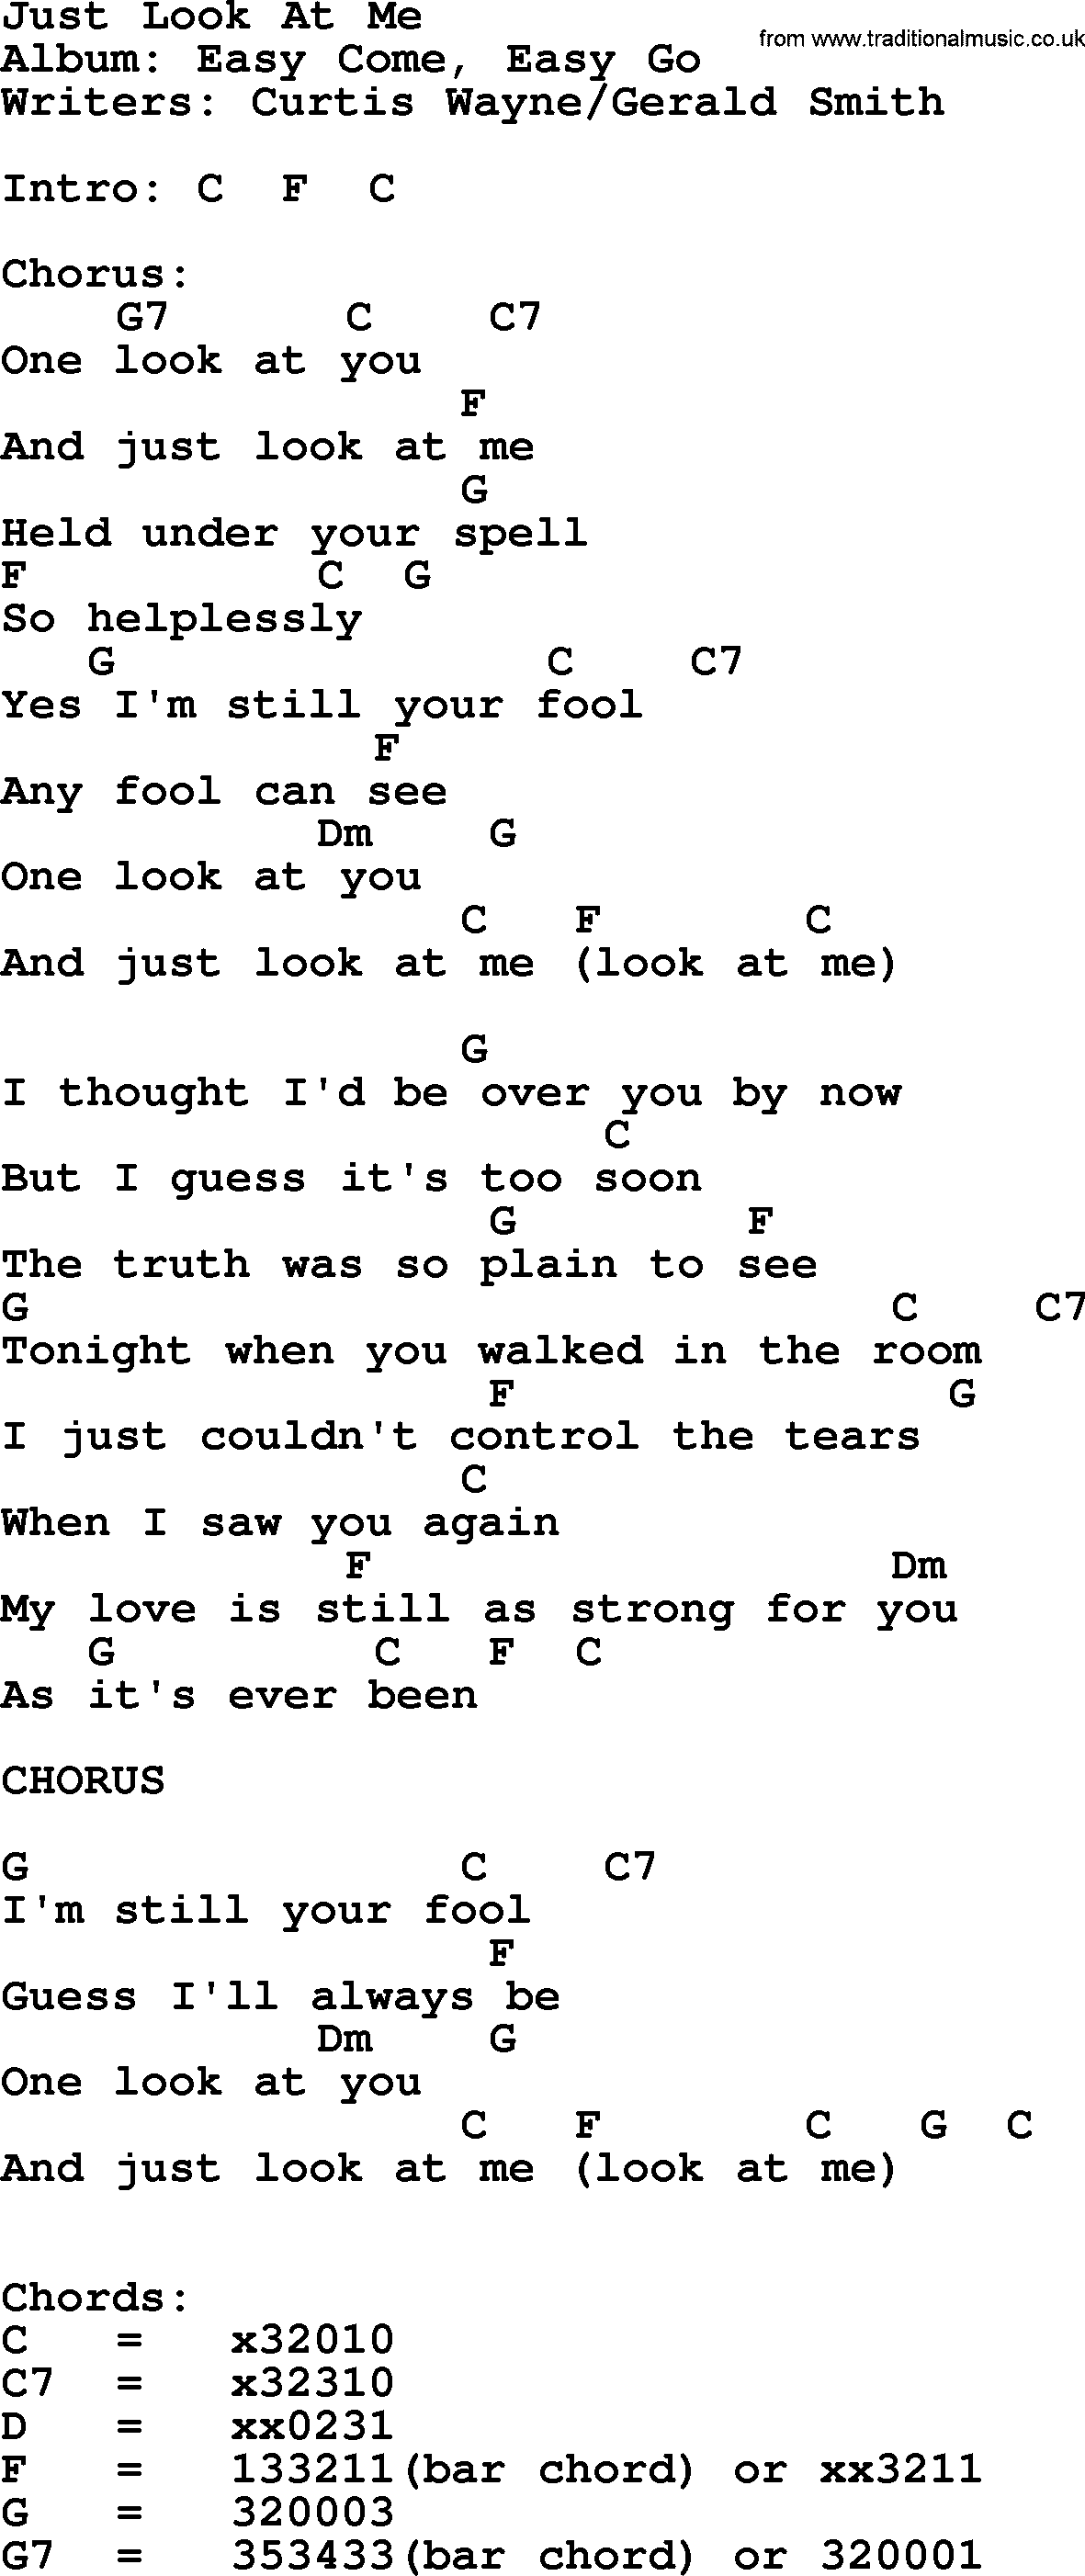 Just look at me by george strait lyrics and chords george strait song just look at me lyrics and chords hexwebz Images